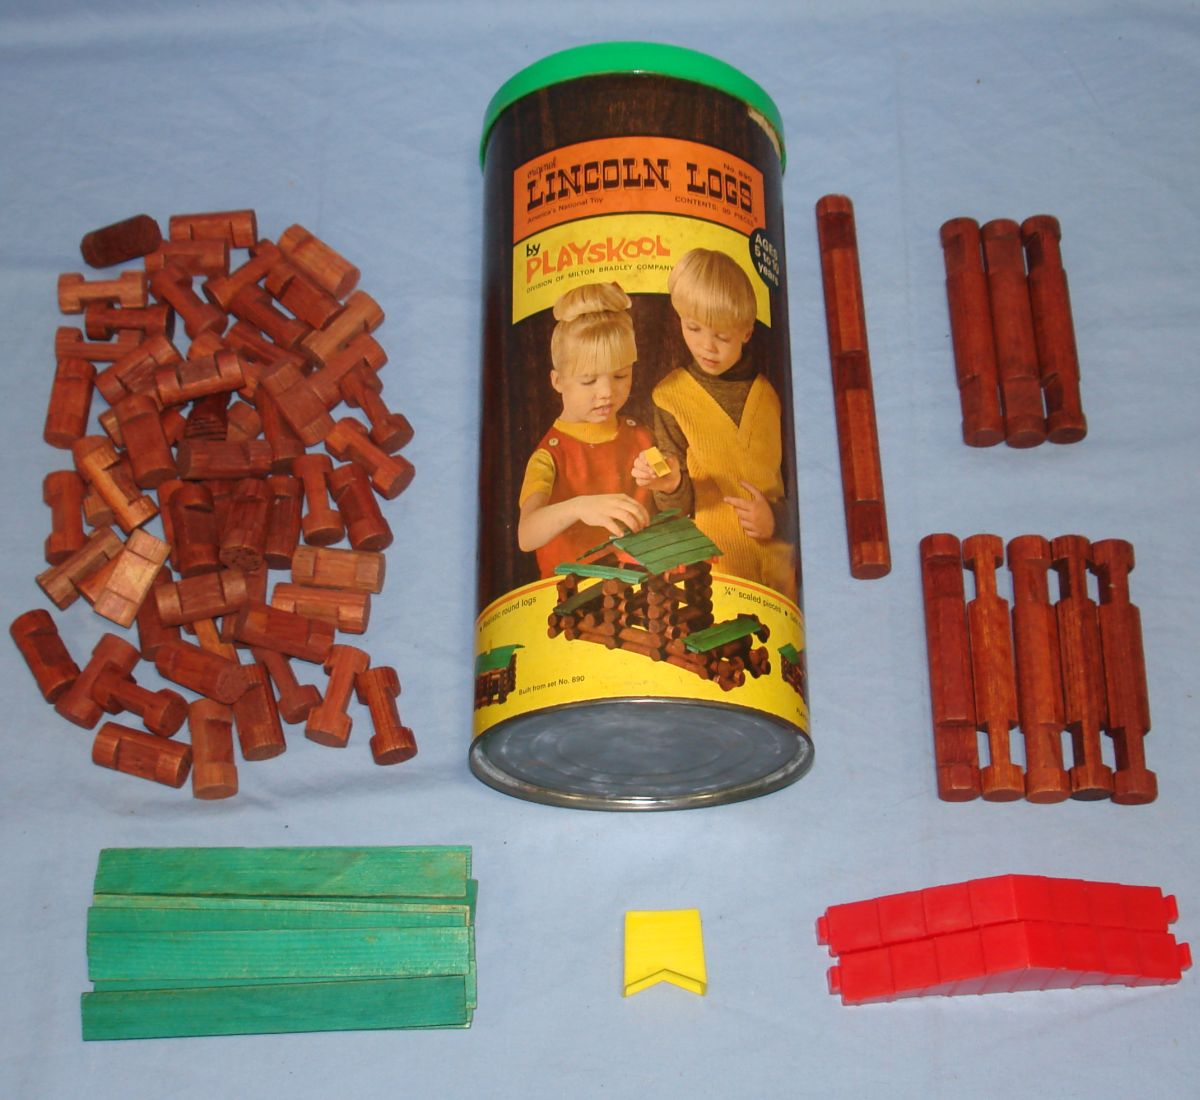 Playskool Lincoln Logs Canister Set 890 Red Plastic